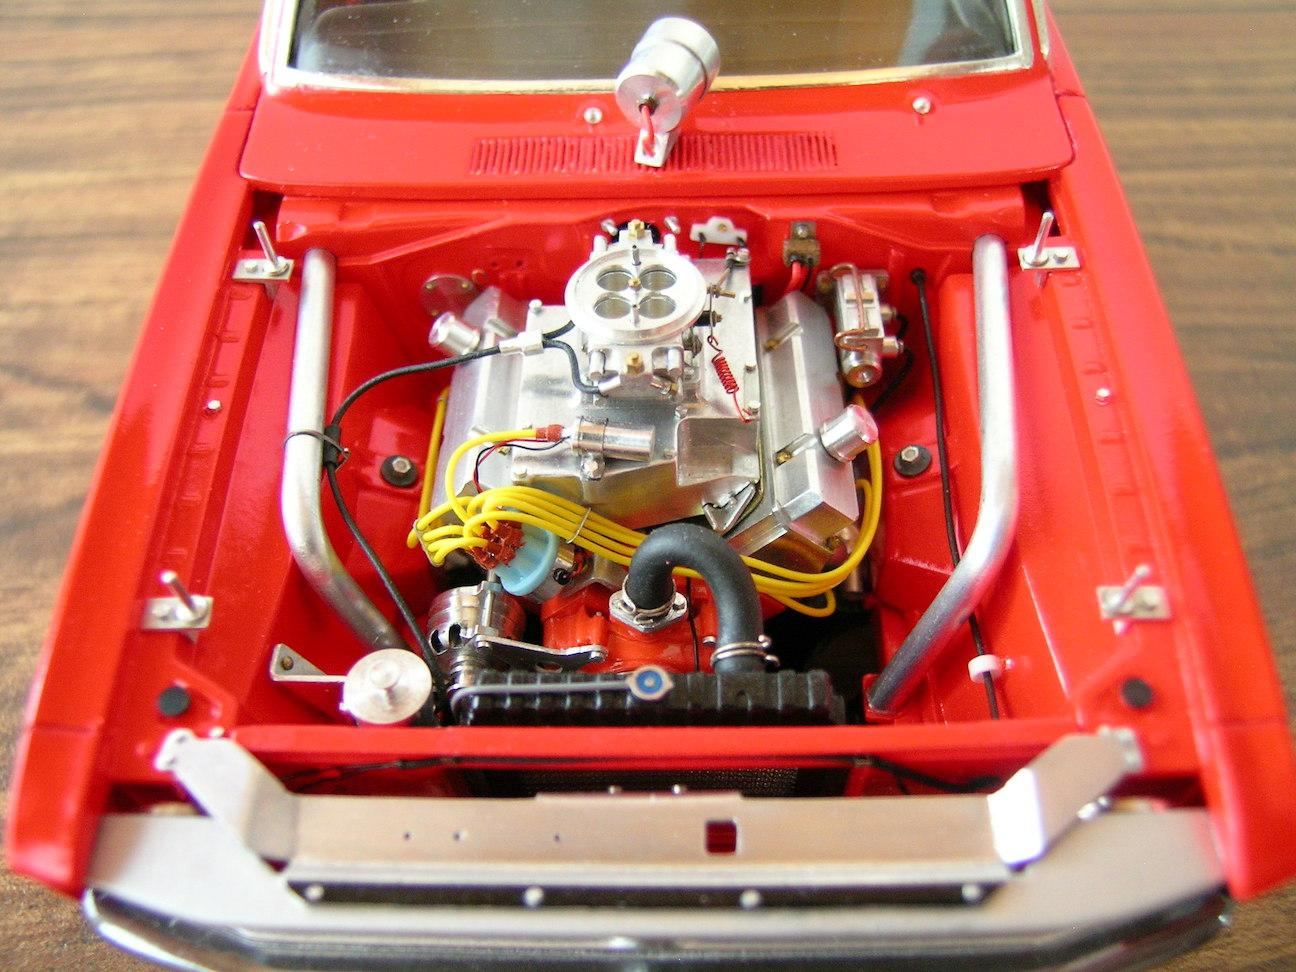 21_Final_Engine_Bay_2.JPG.9d75f5cf45f878589beb8857fcc36003.JPG